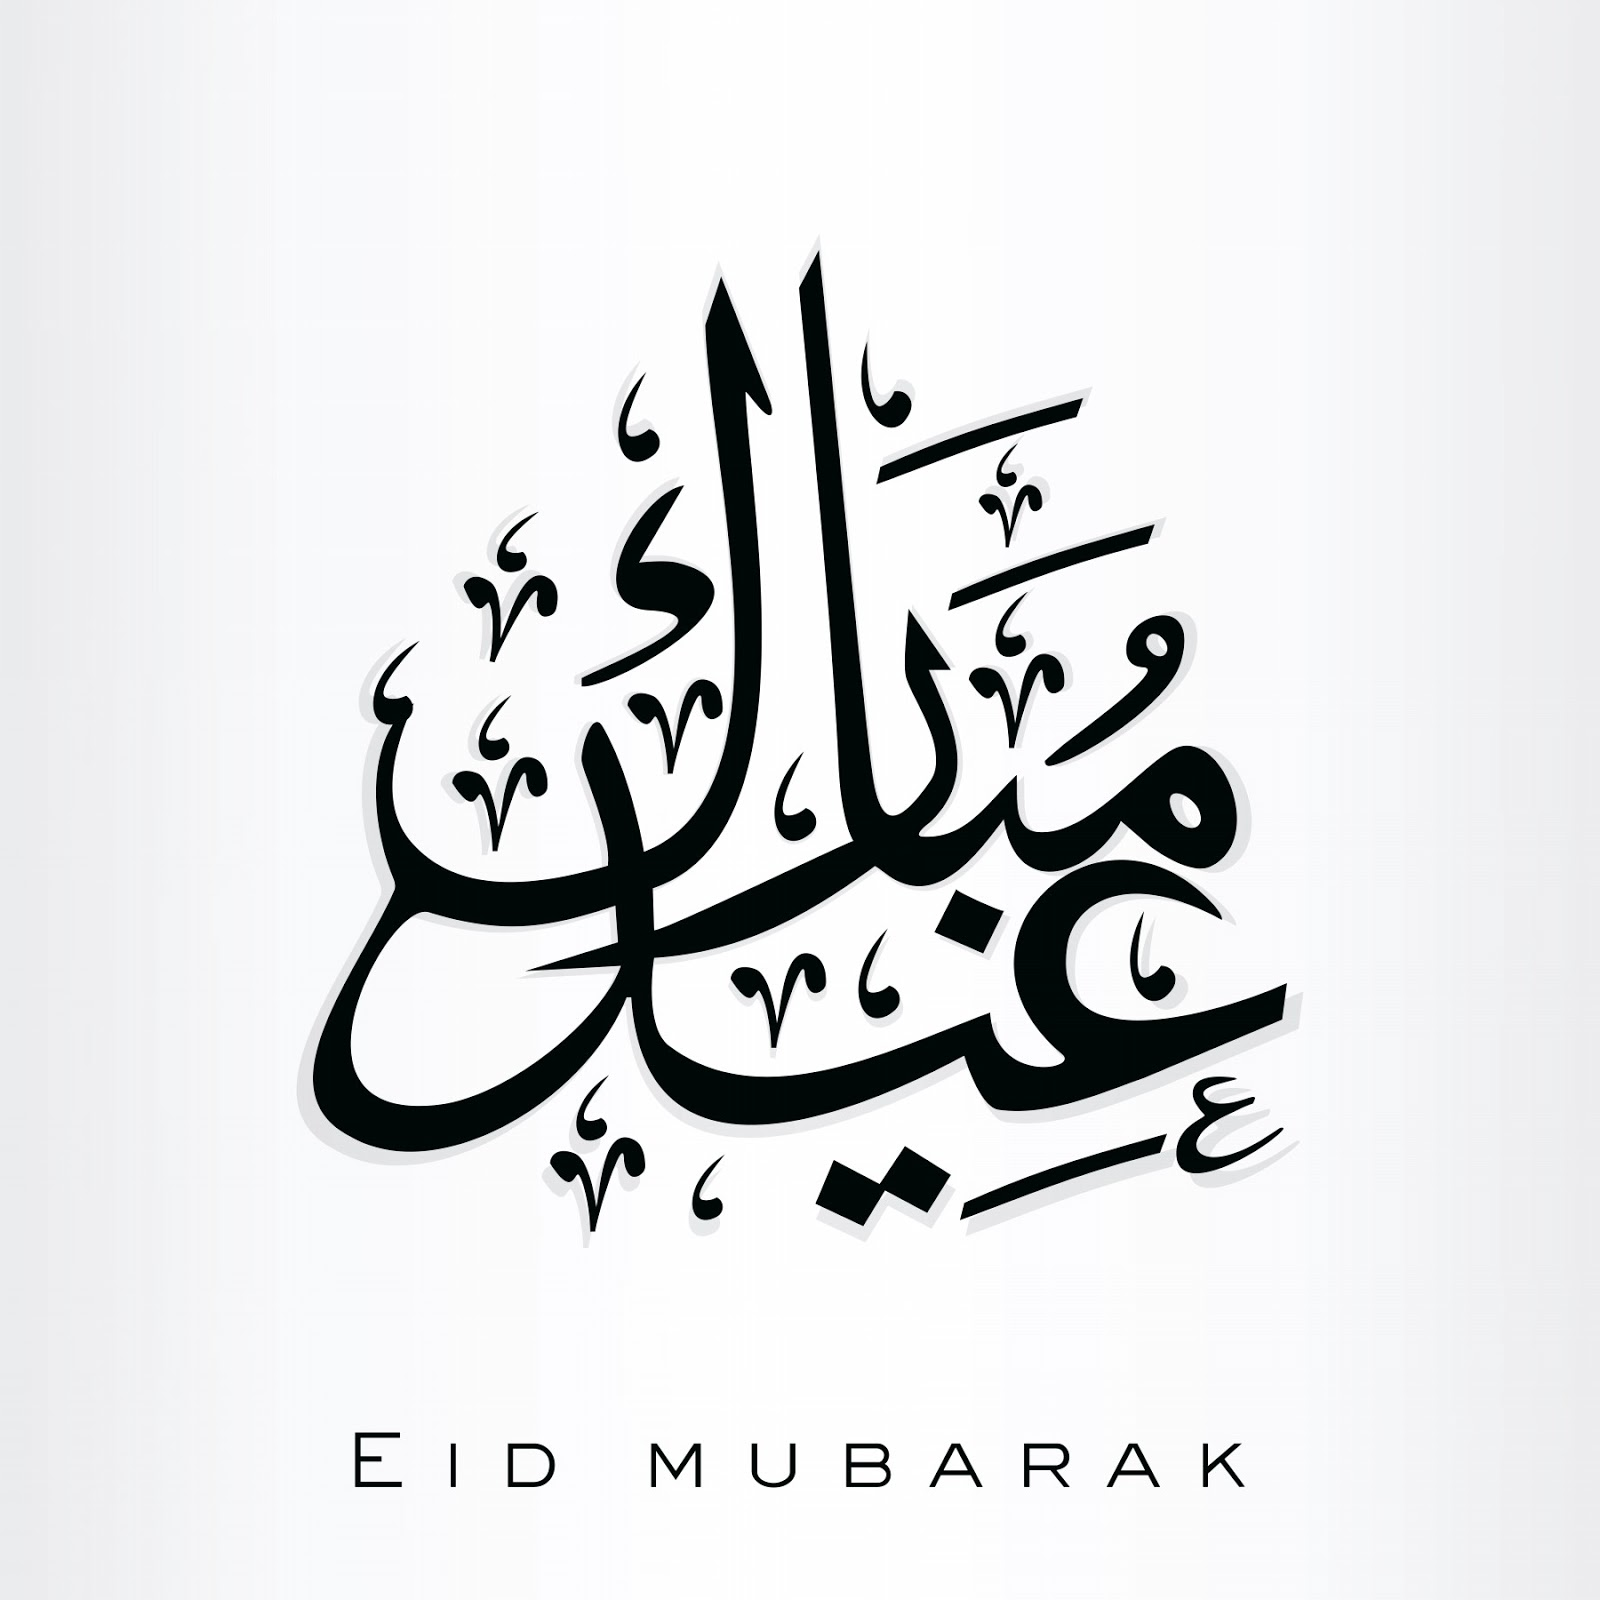 True spirit of eid ul fitr spiritual reflections with these words i wish an eid mubarak to all my muslim brothers sisters and children around the world may allah remove your every difficulty and enable kristyandbryce Image collections